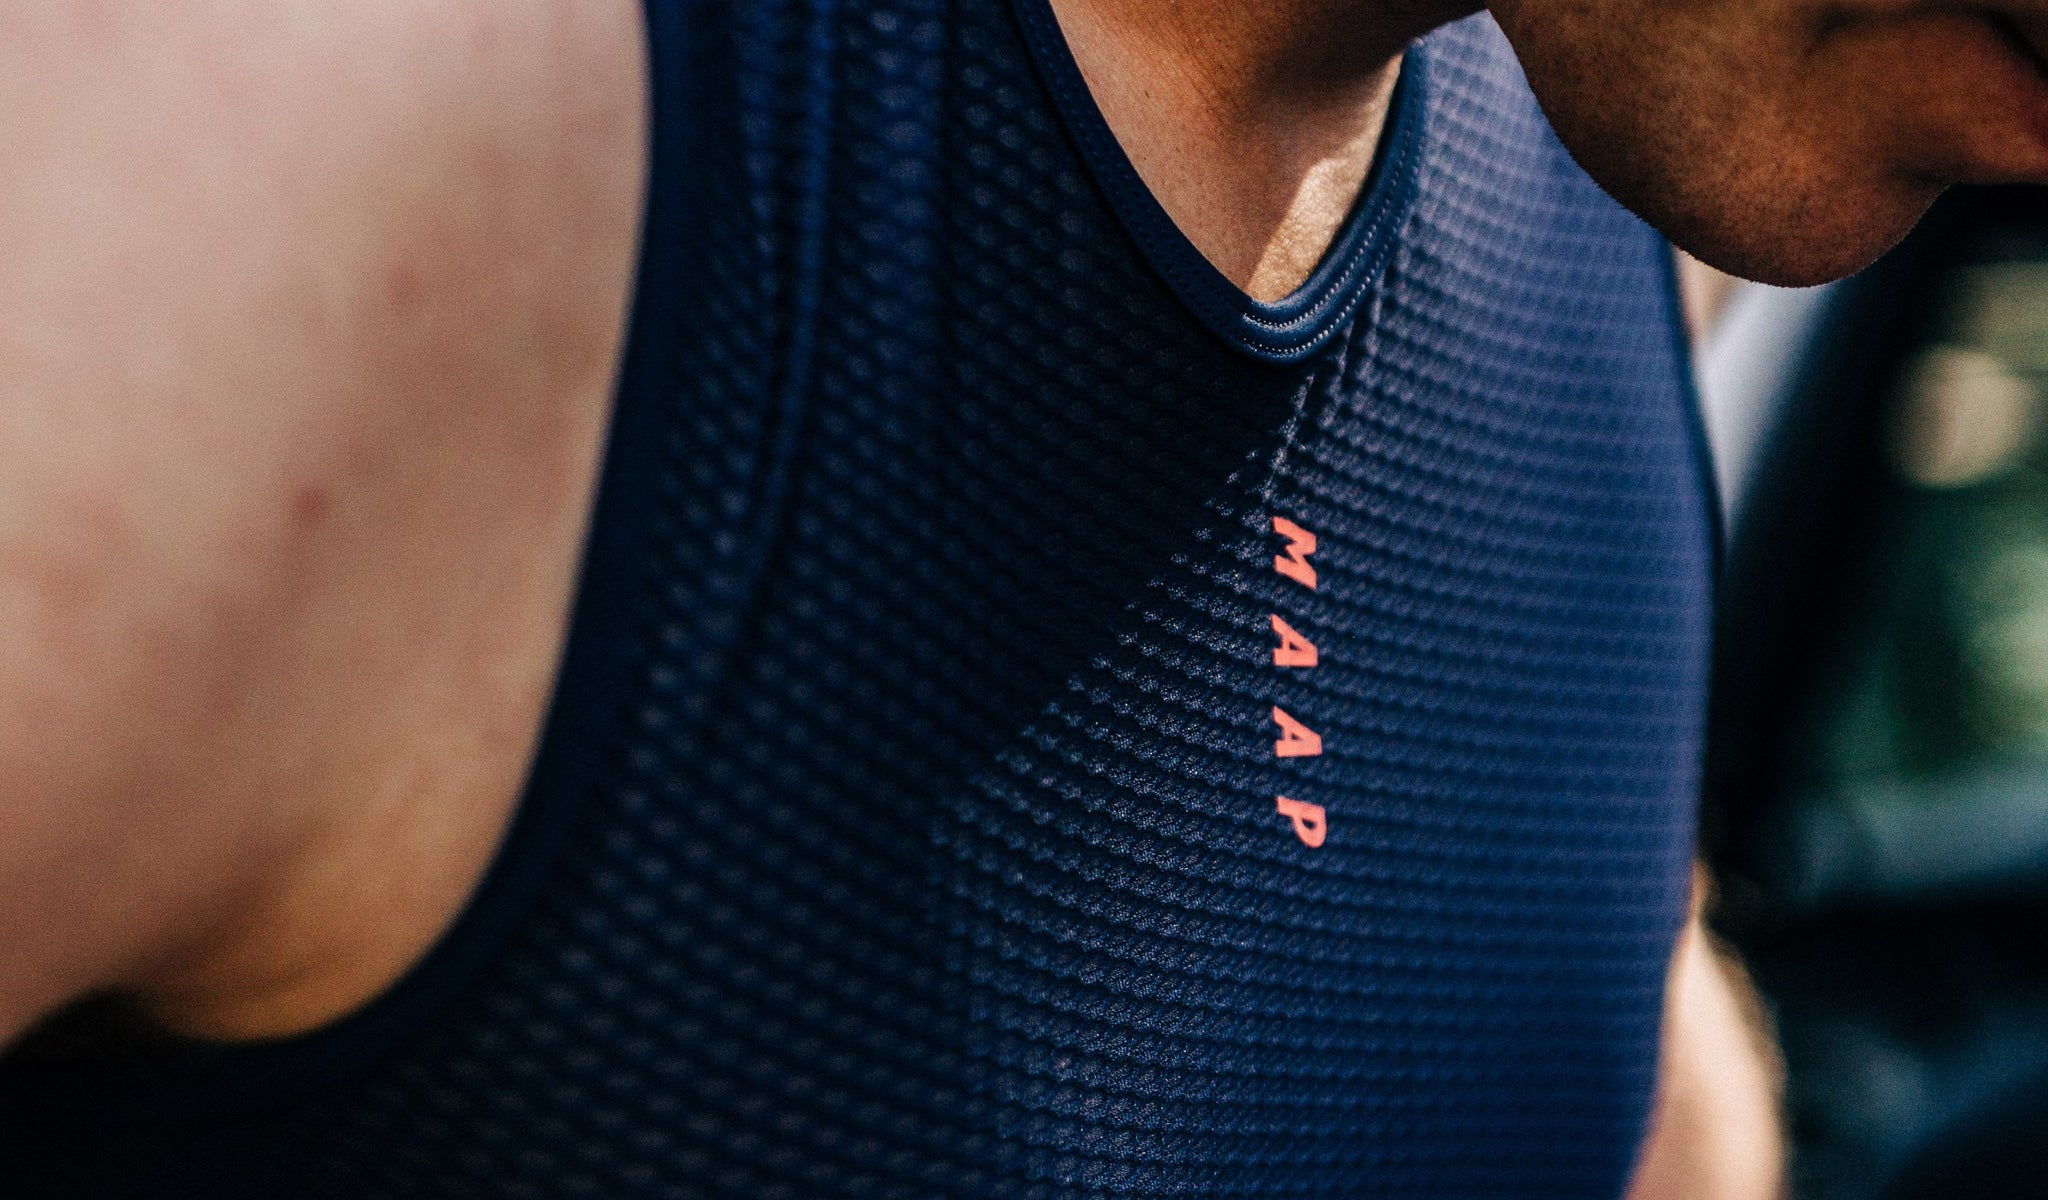 MAAP Team Cycling Base Layer in Navy for riding in warm weather conditions.